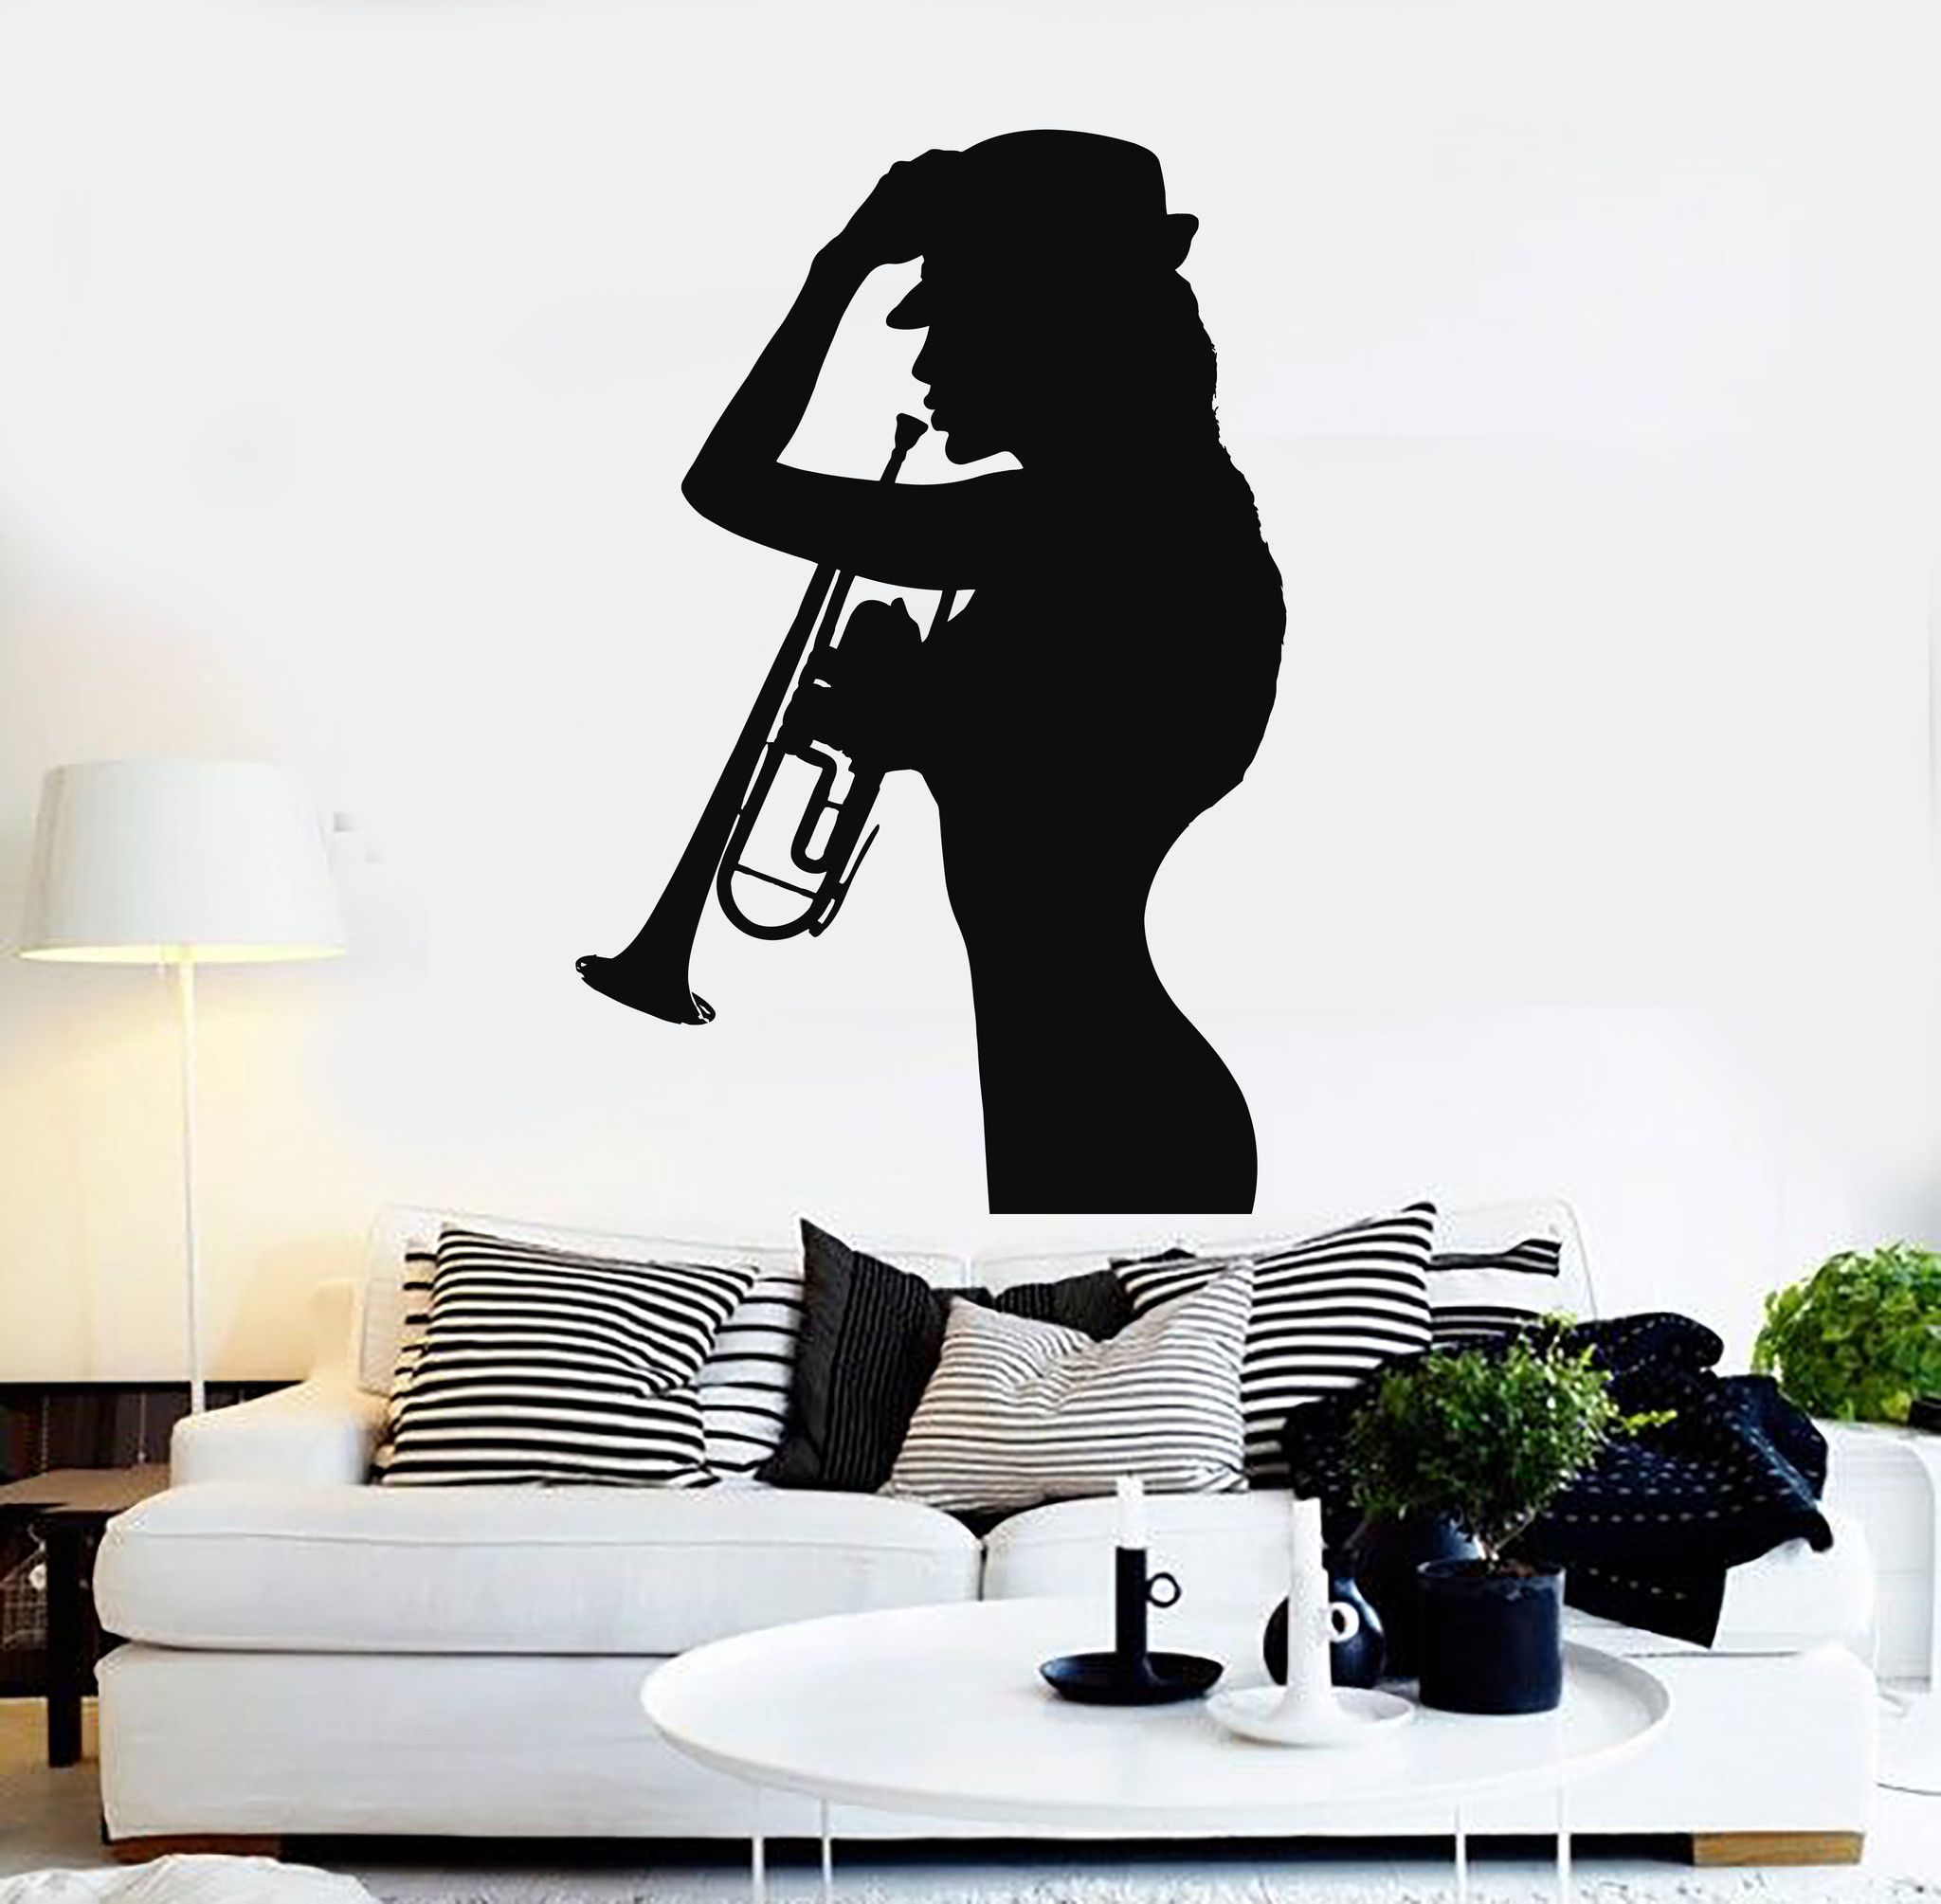 Vinyl Wall Decal Woman Silhouette Saxophone Music Jazz Stickers - How to make vinyl wall decals with silhouette